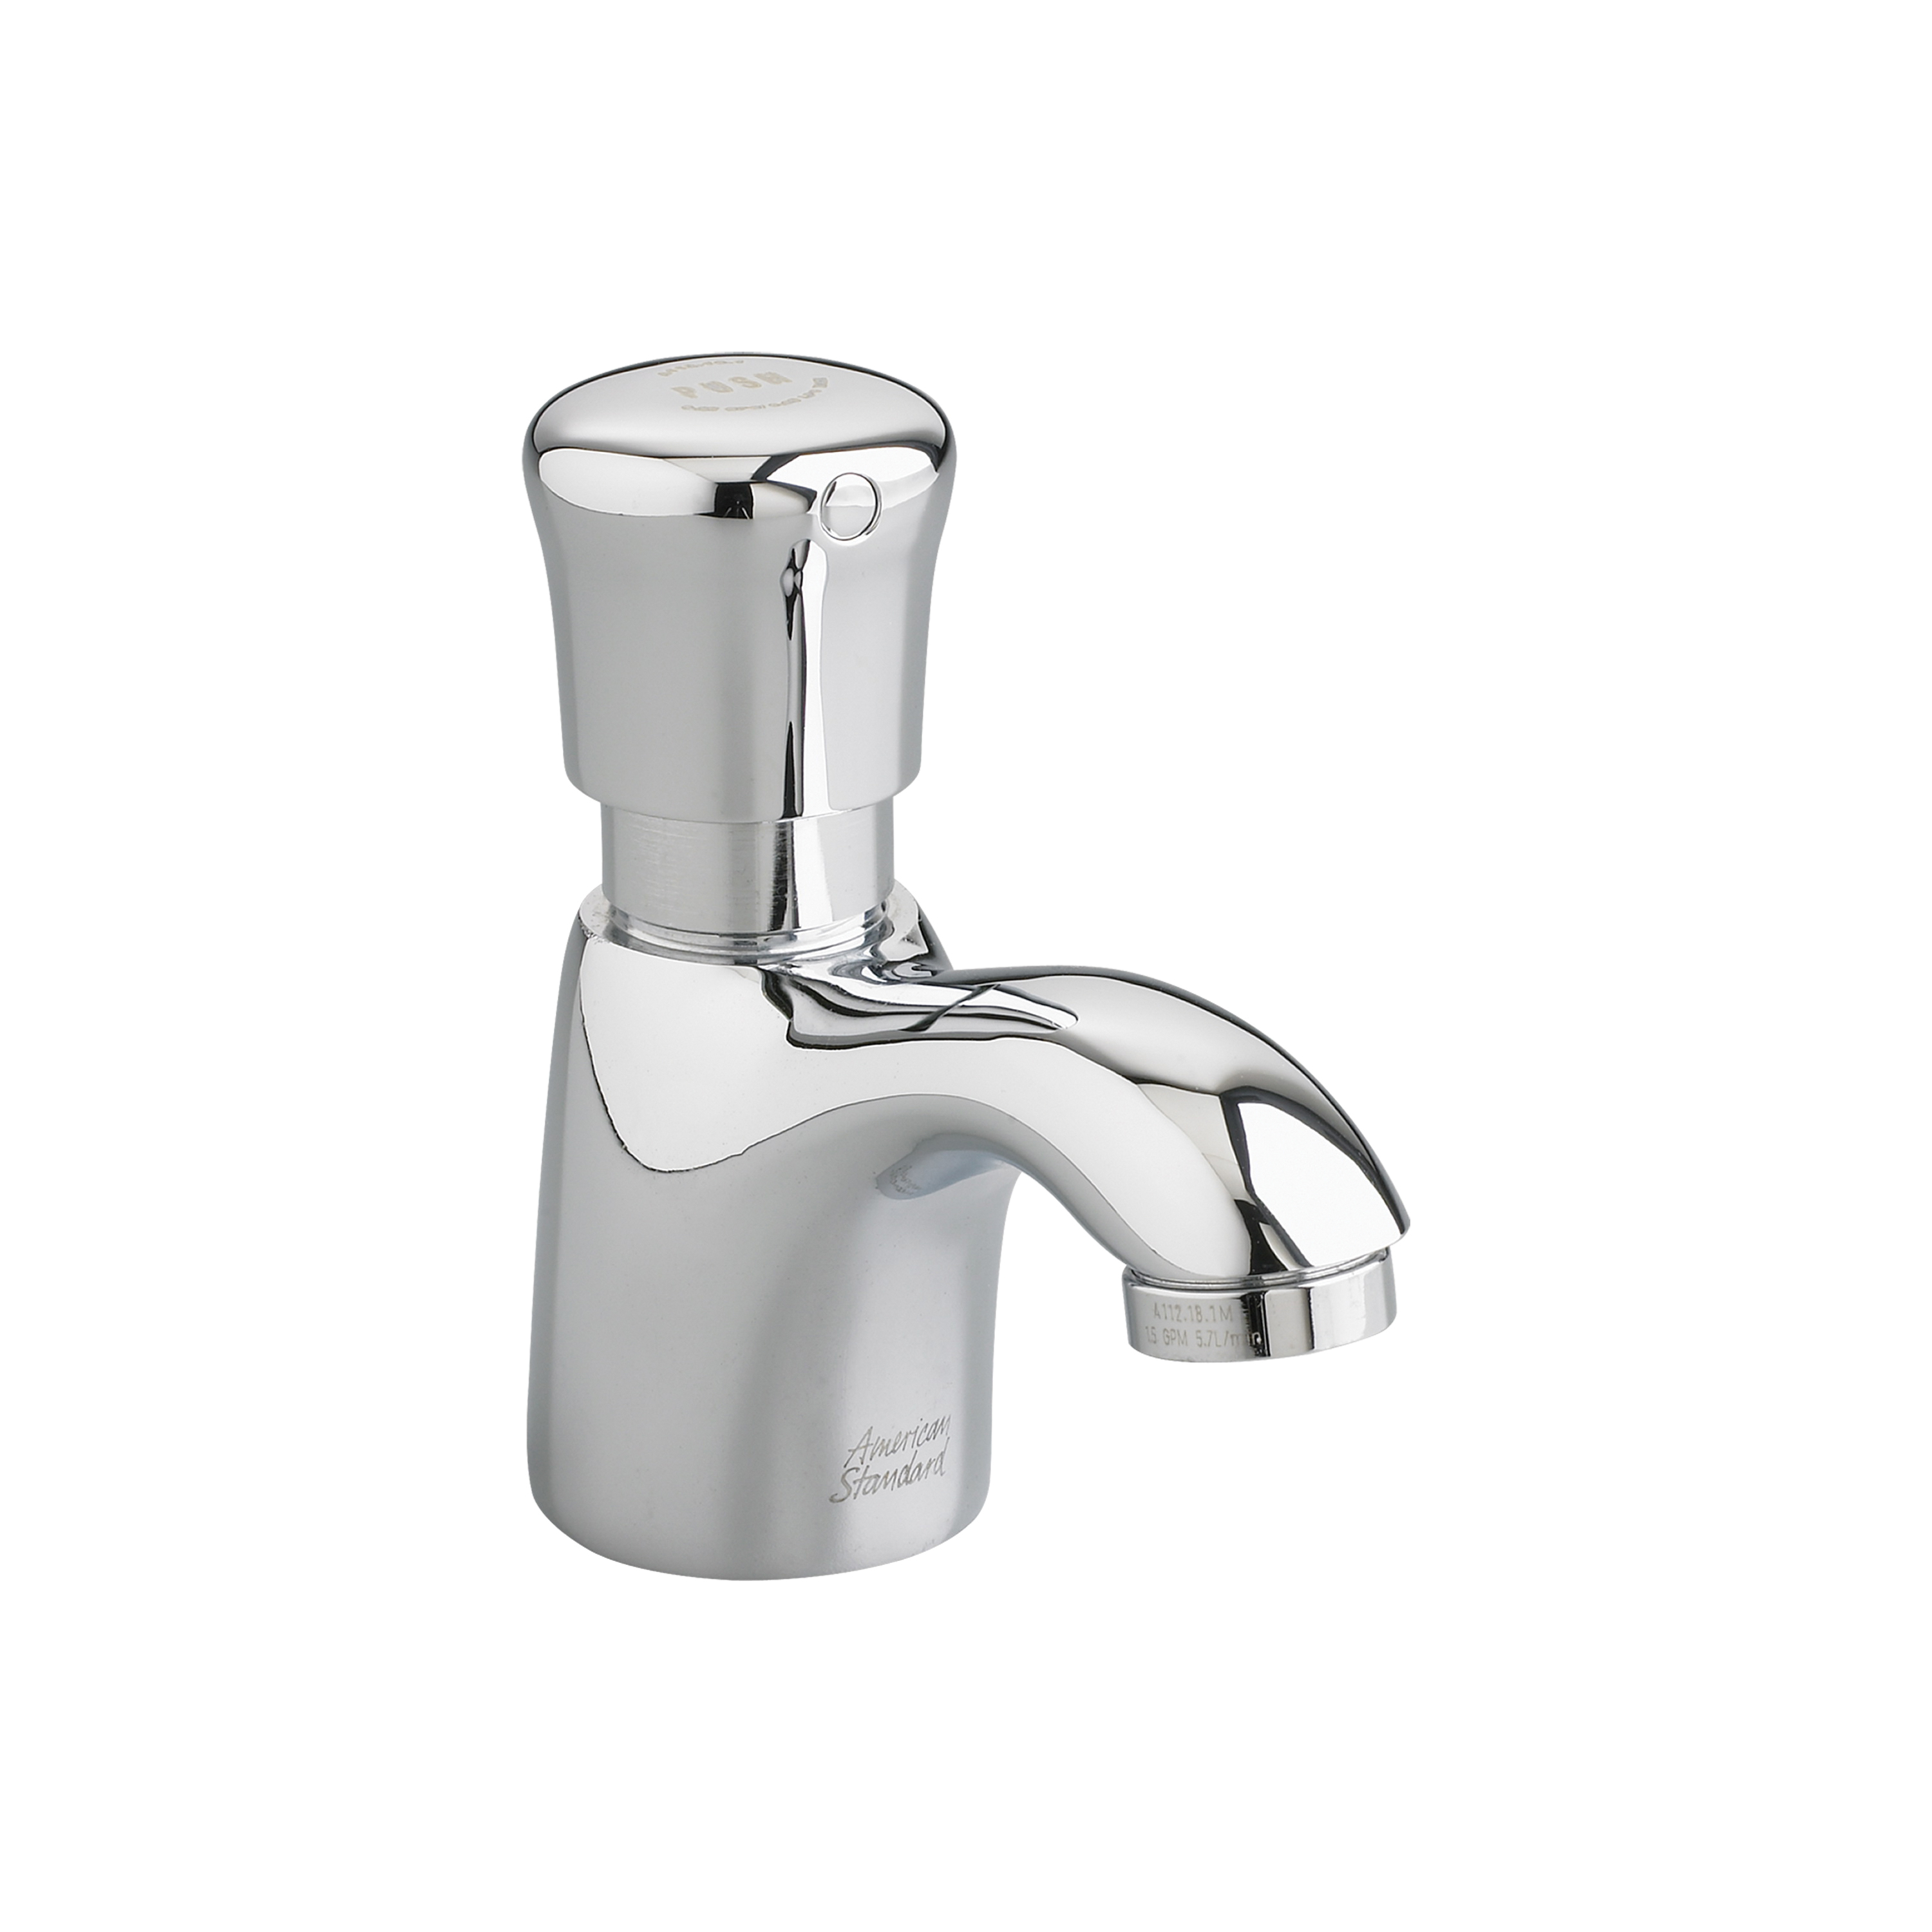 Consolidated Supply Co. | American Standard 1340M119.002 Pillar Tap ...